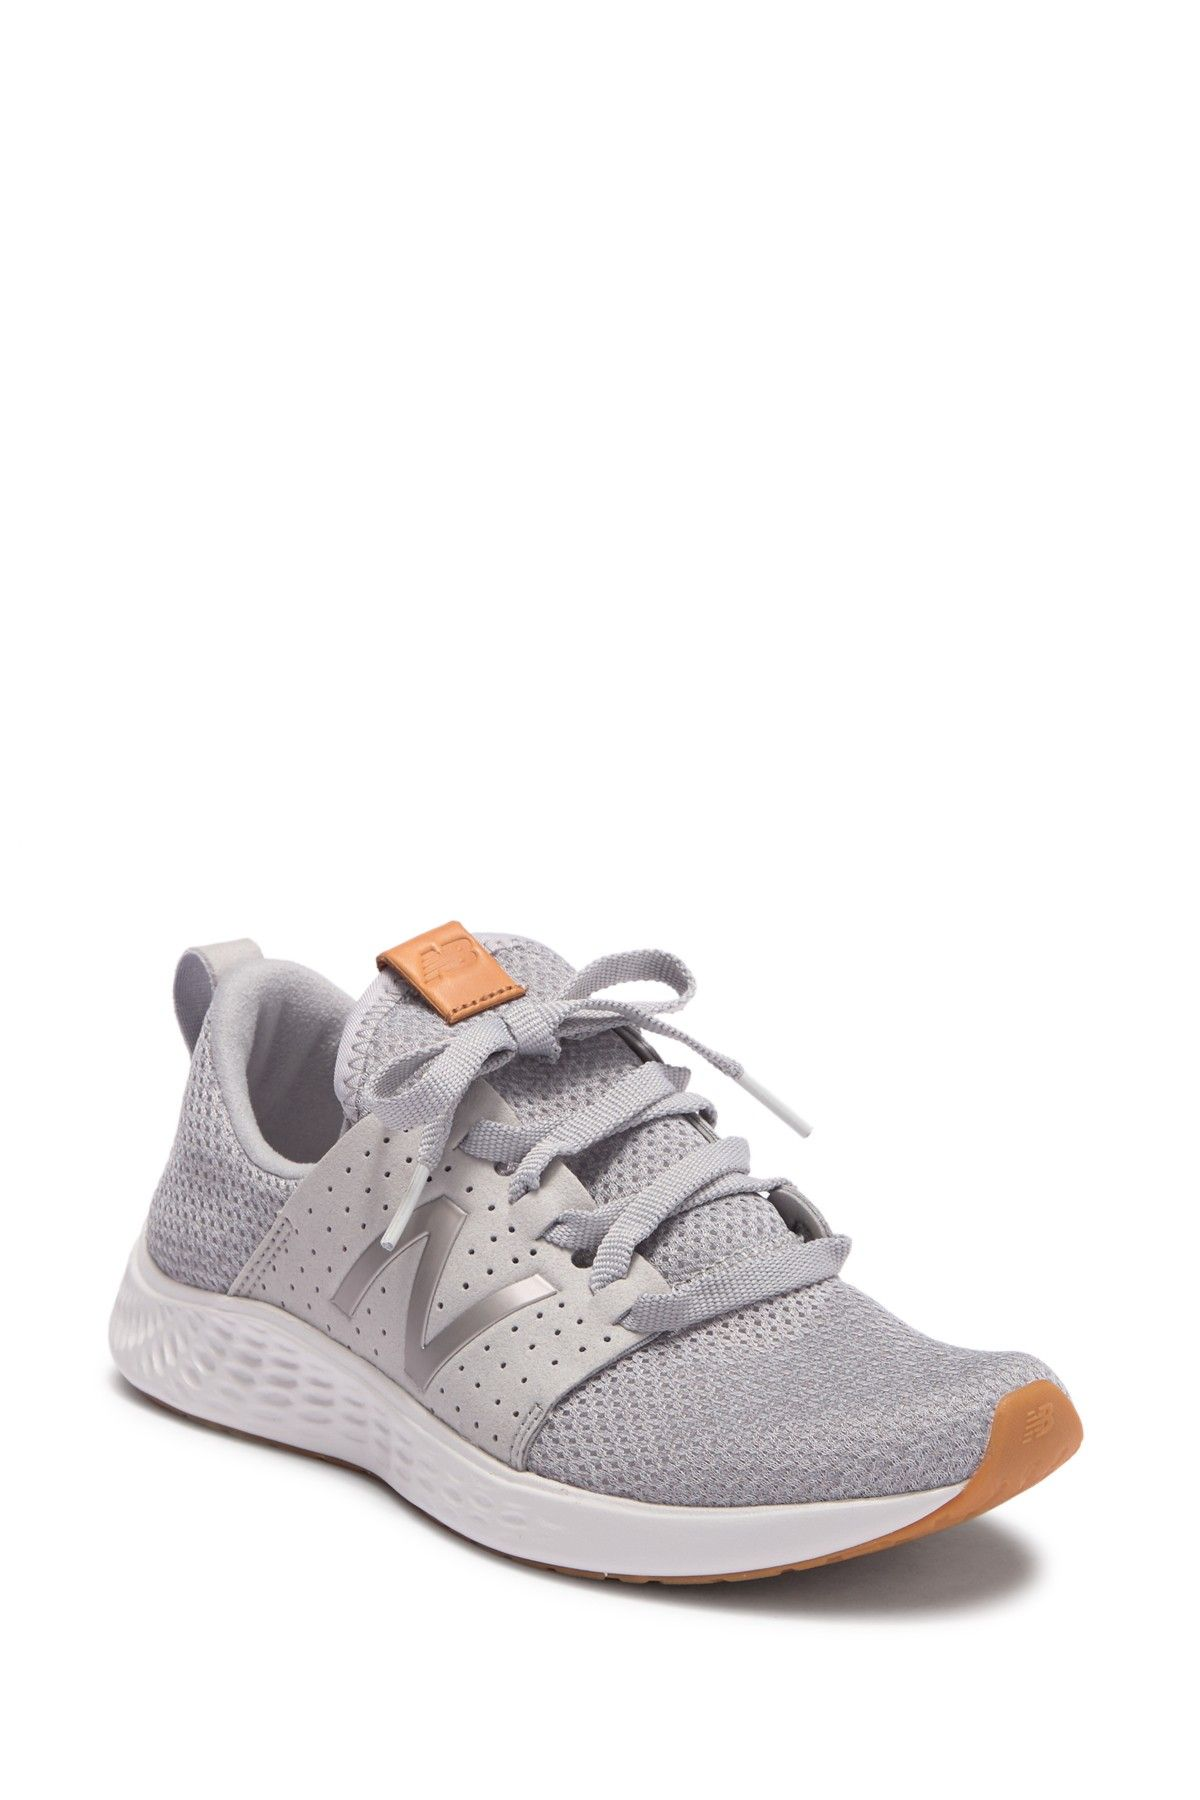 33cc2d0e2f1 New Balance - WSPTv1 Sneaker - Wide Width Available is now 20% off. Free  Shipping on orders over $100.